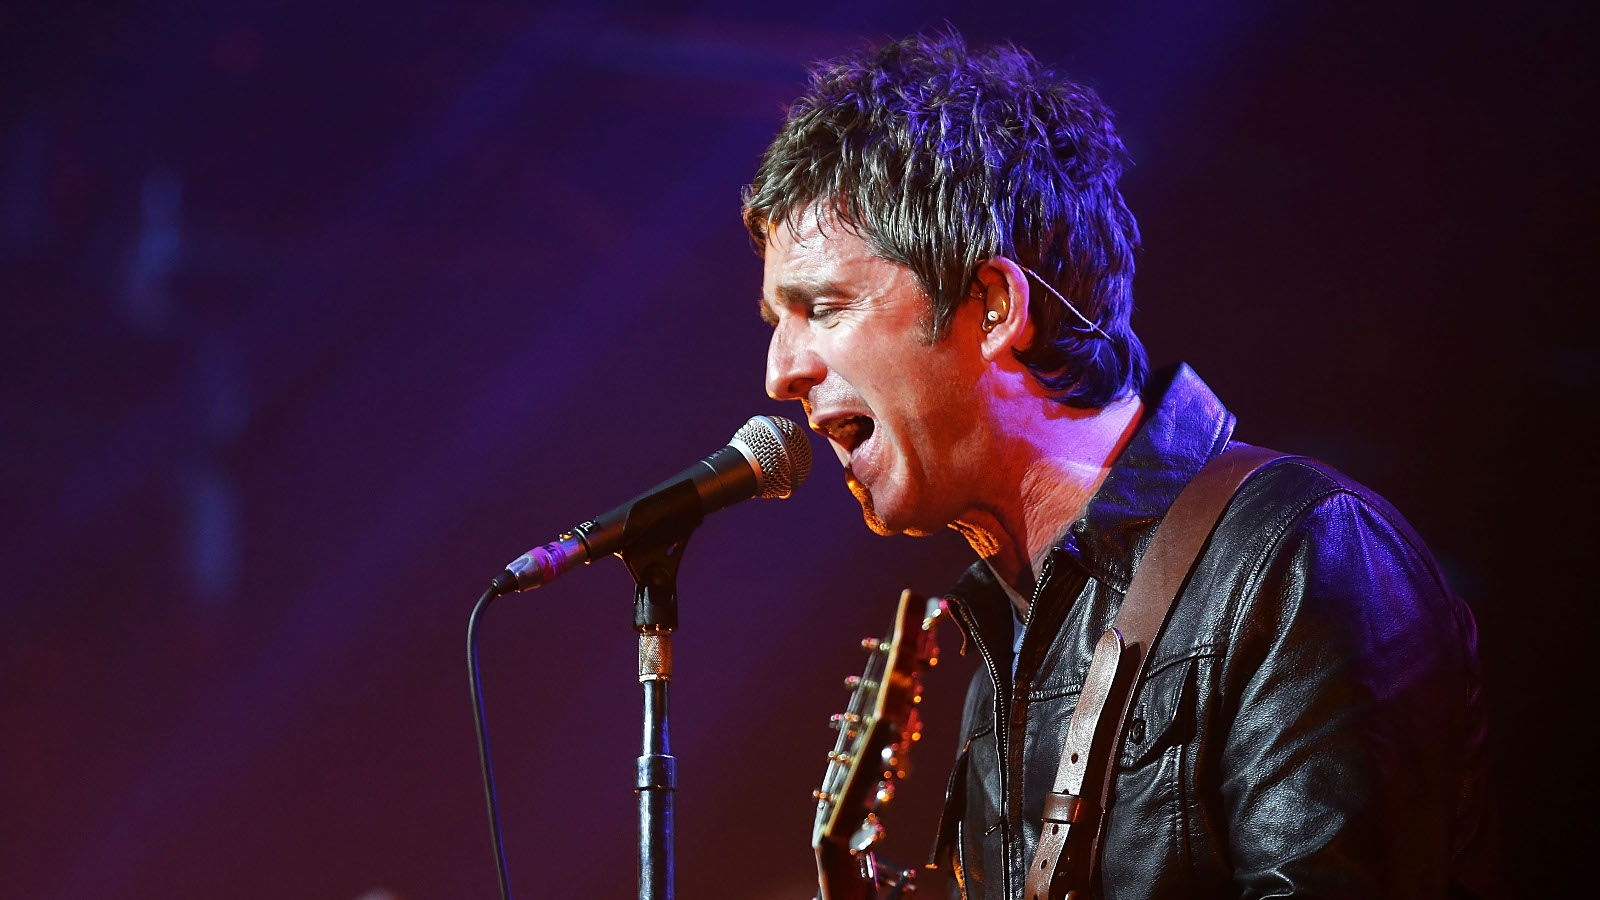 bec0c2155d Noel Gallagher has reportedly made a generous donation to the Manchester  Victims fund